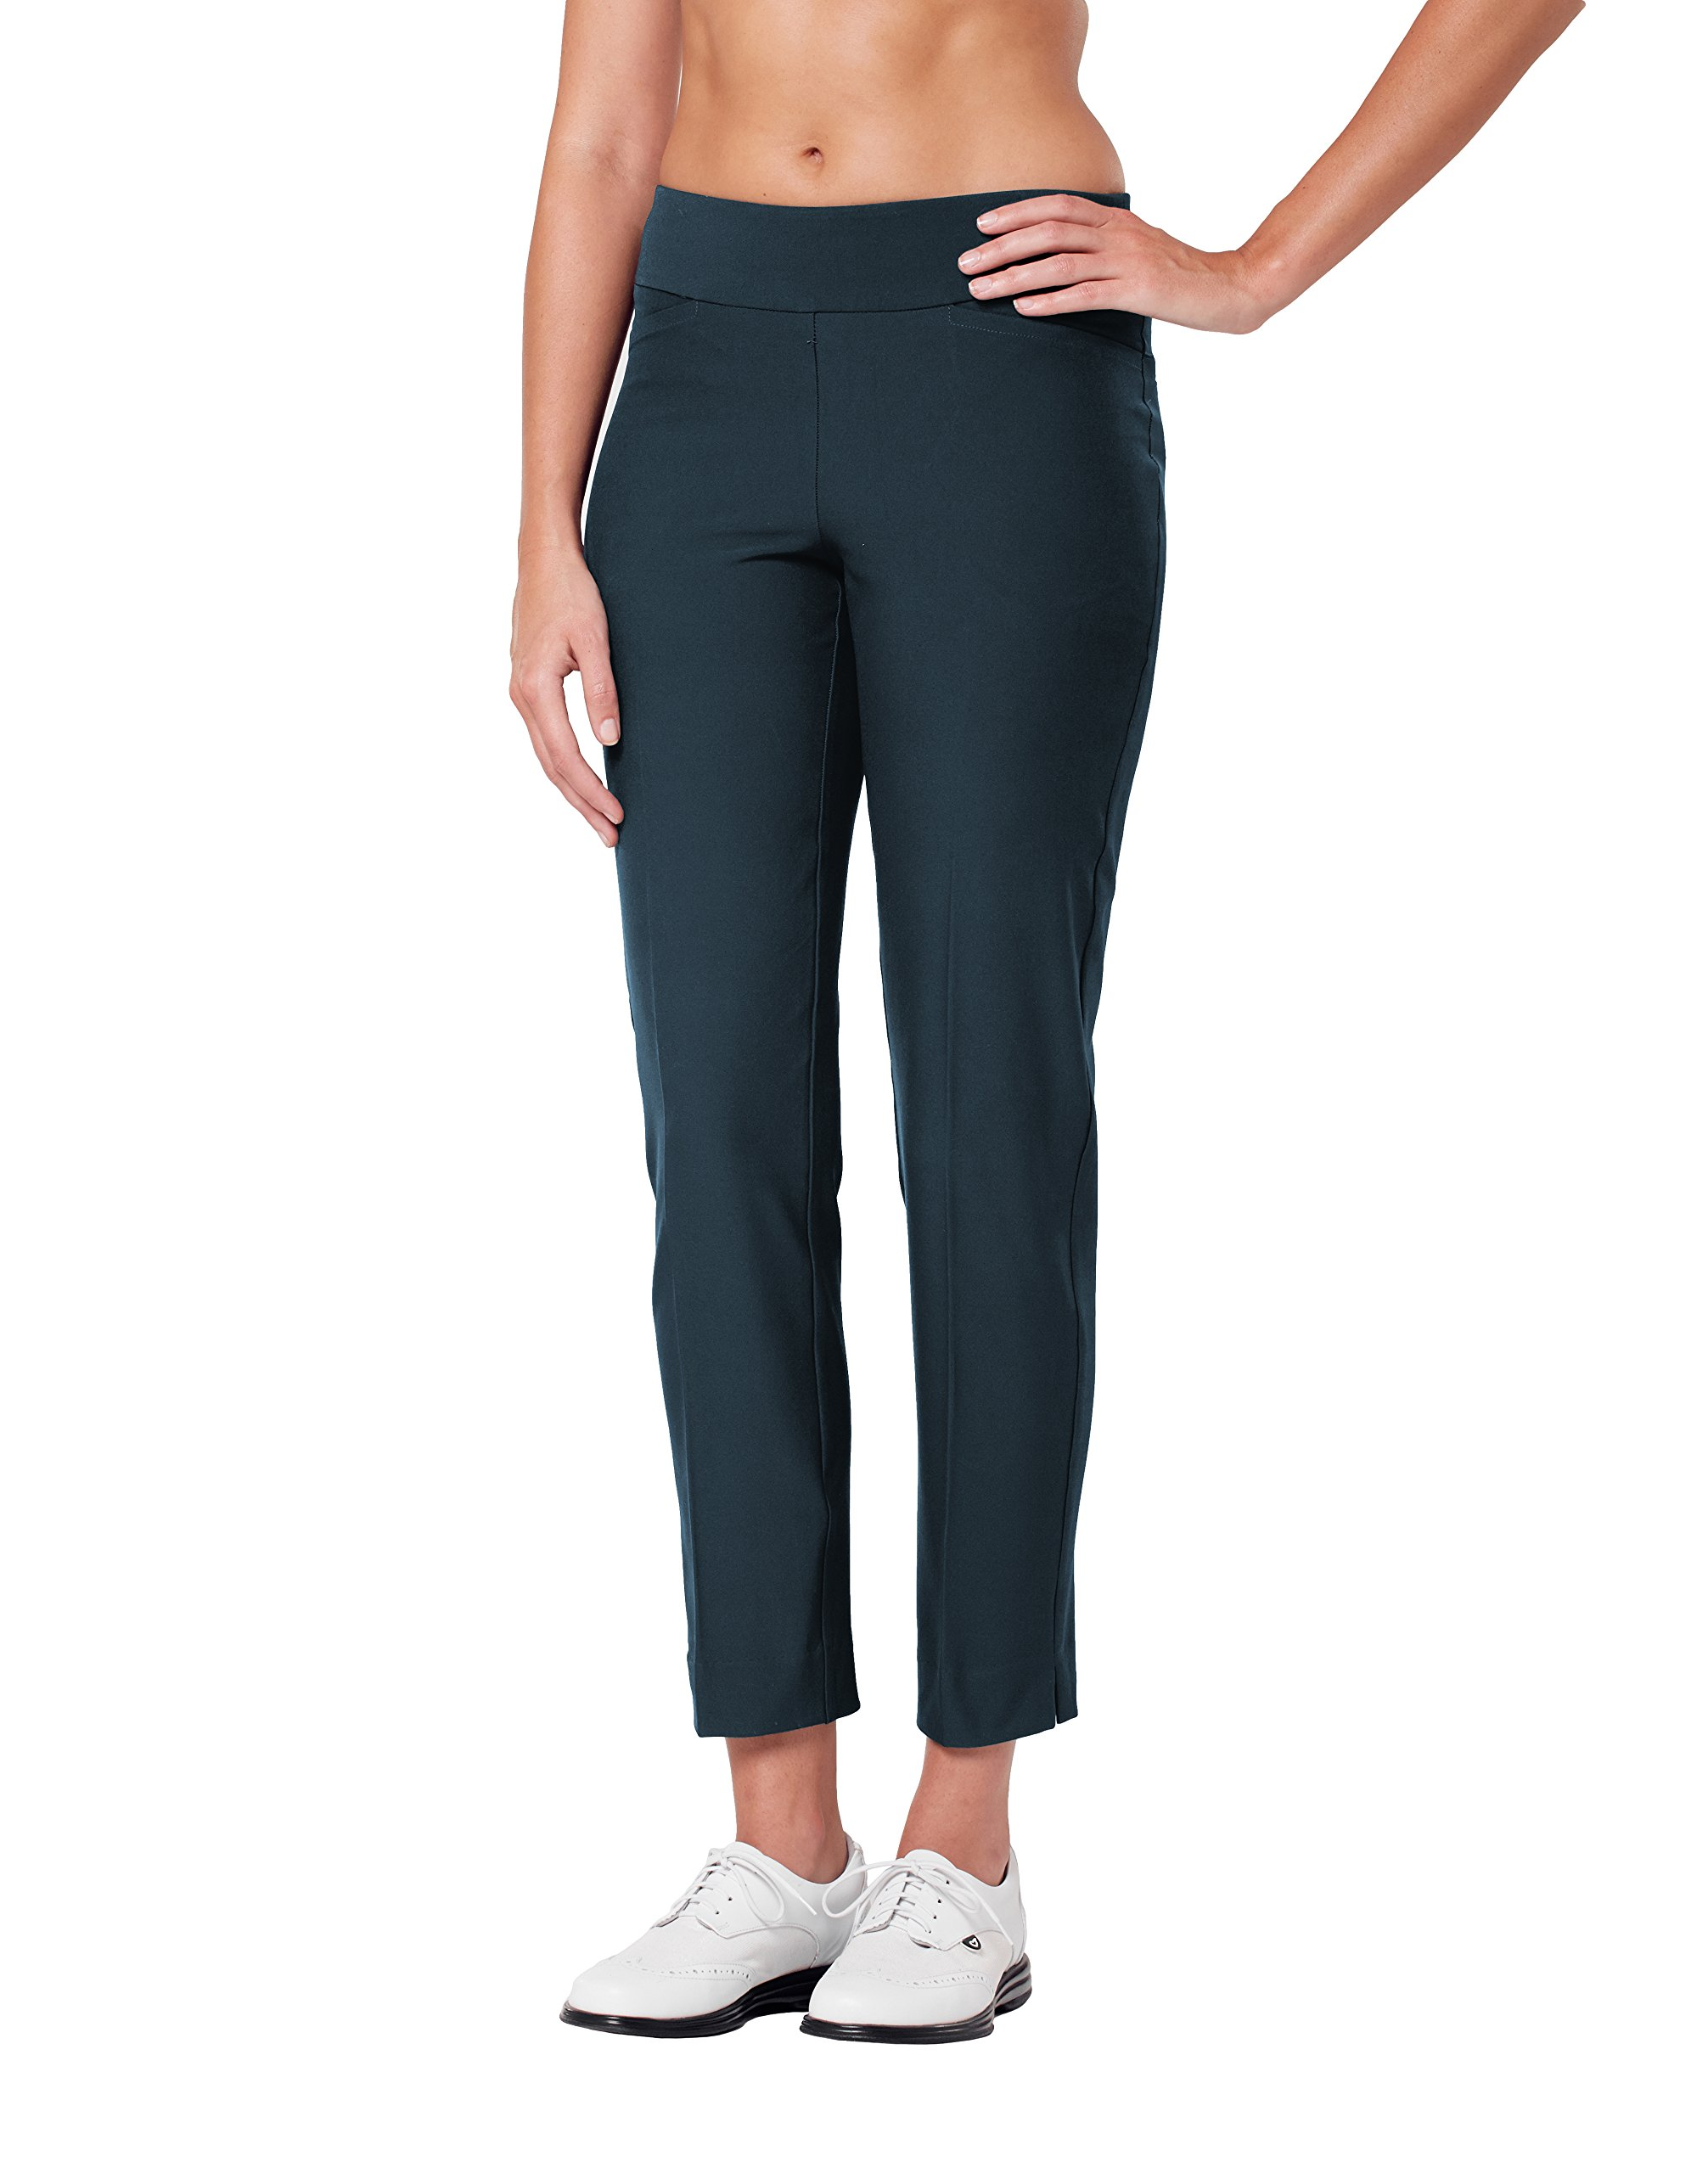 Tail Ladies Forever Forgiving Mulligan Slim Fit Ankle Pants Navy 6 by Tail